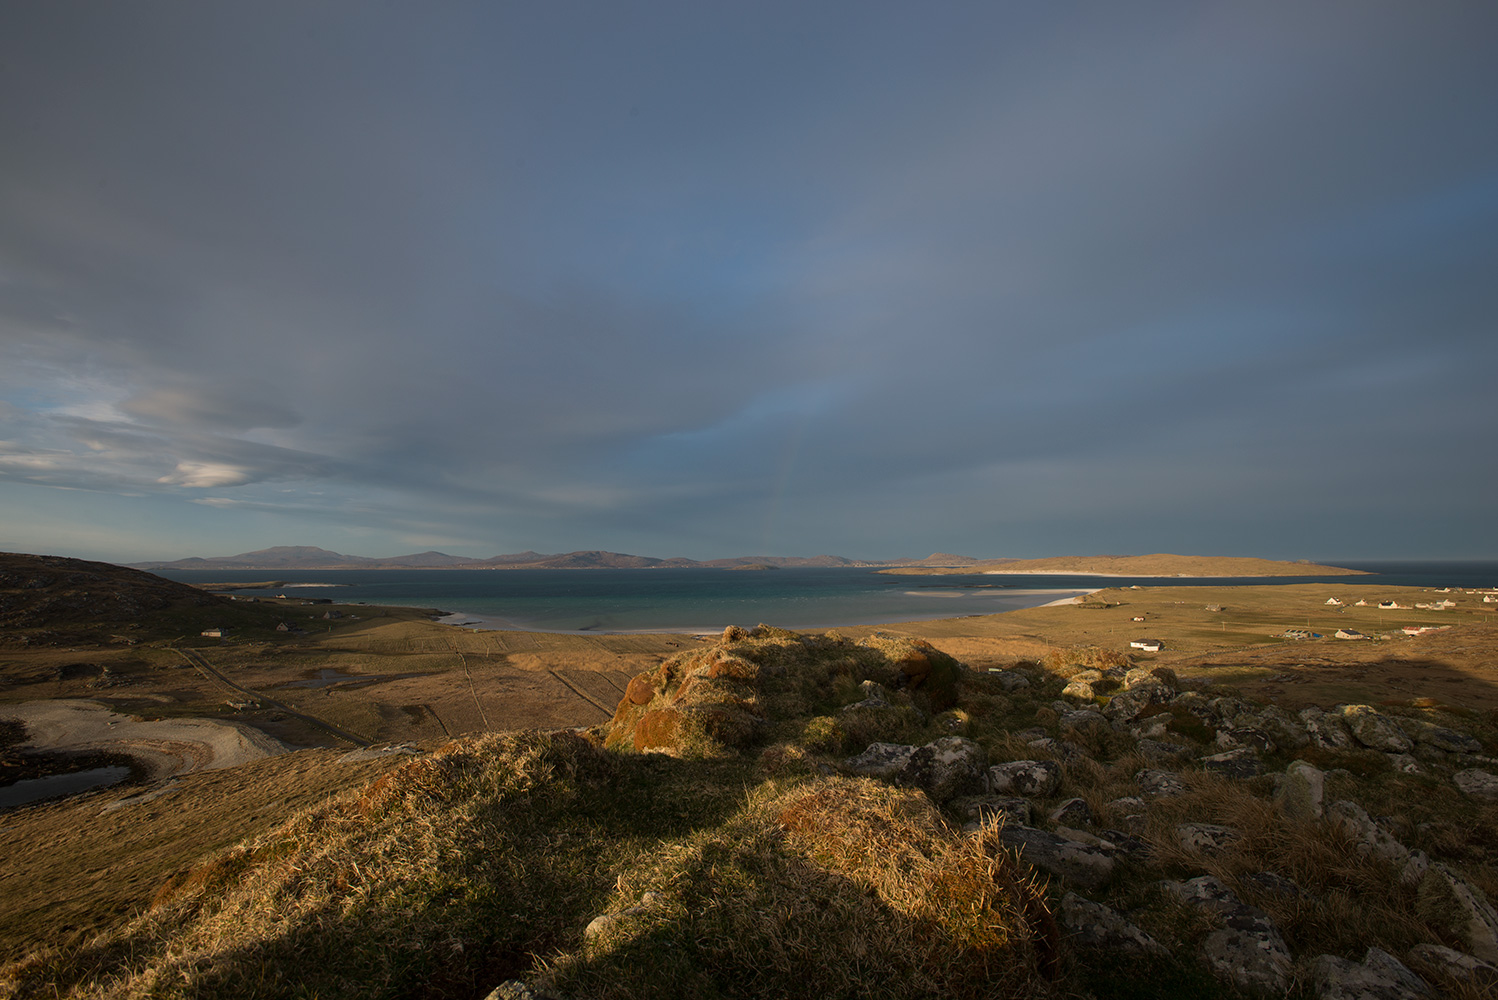 North to Eriskay and Uist from Dun Sgurabhal iron age fort